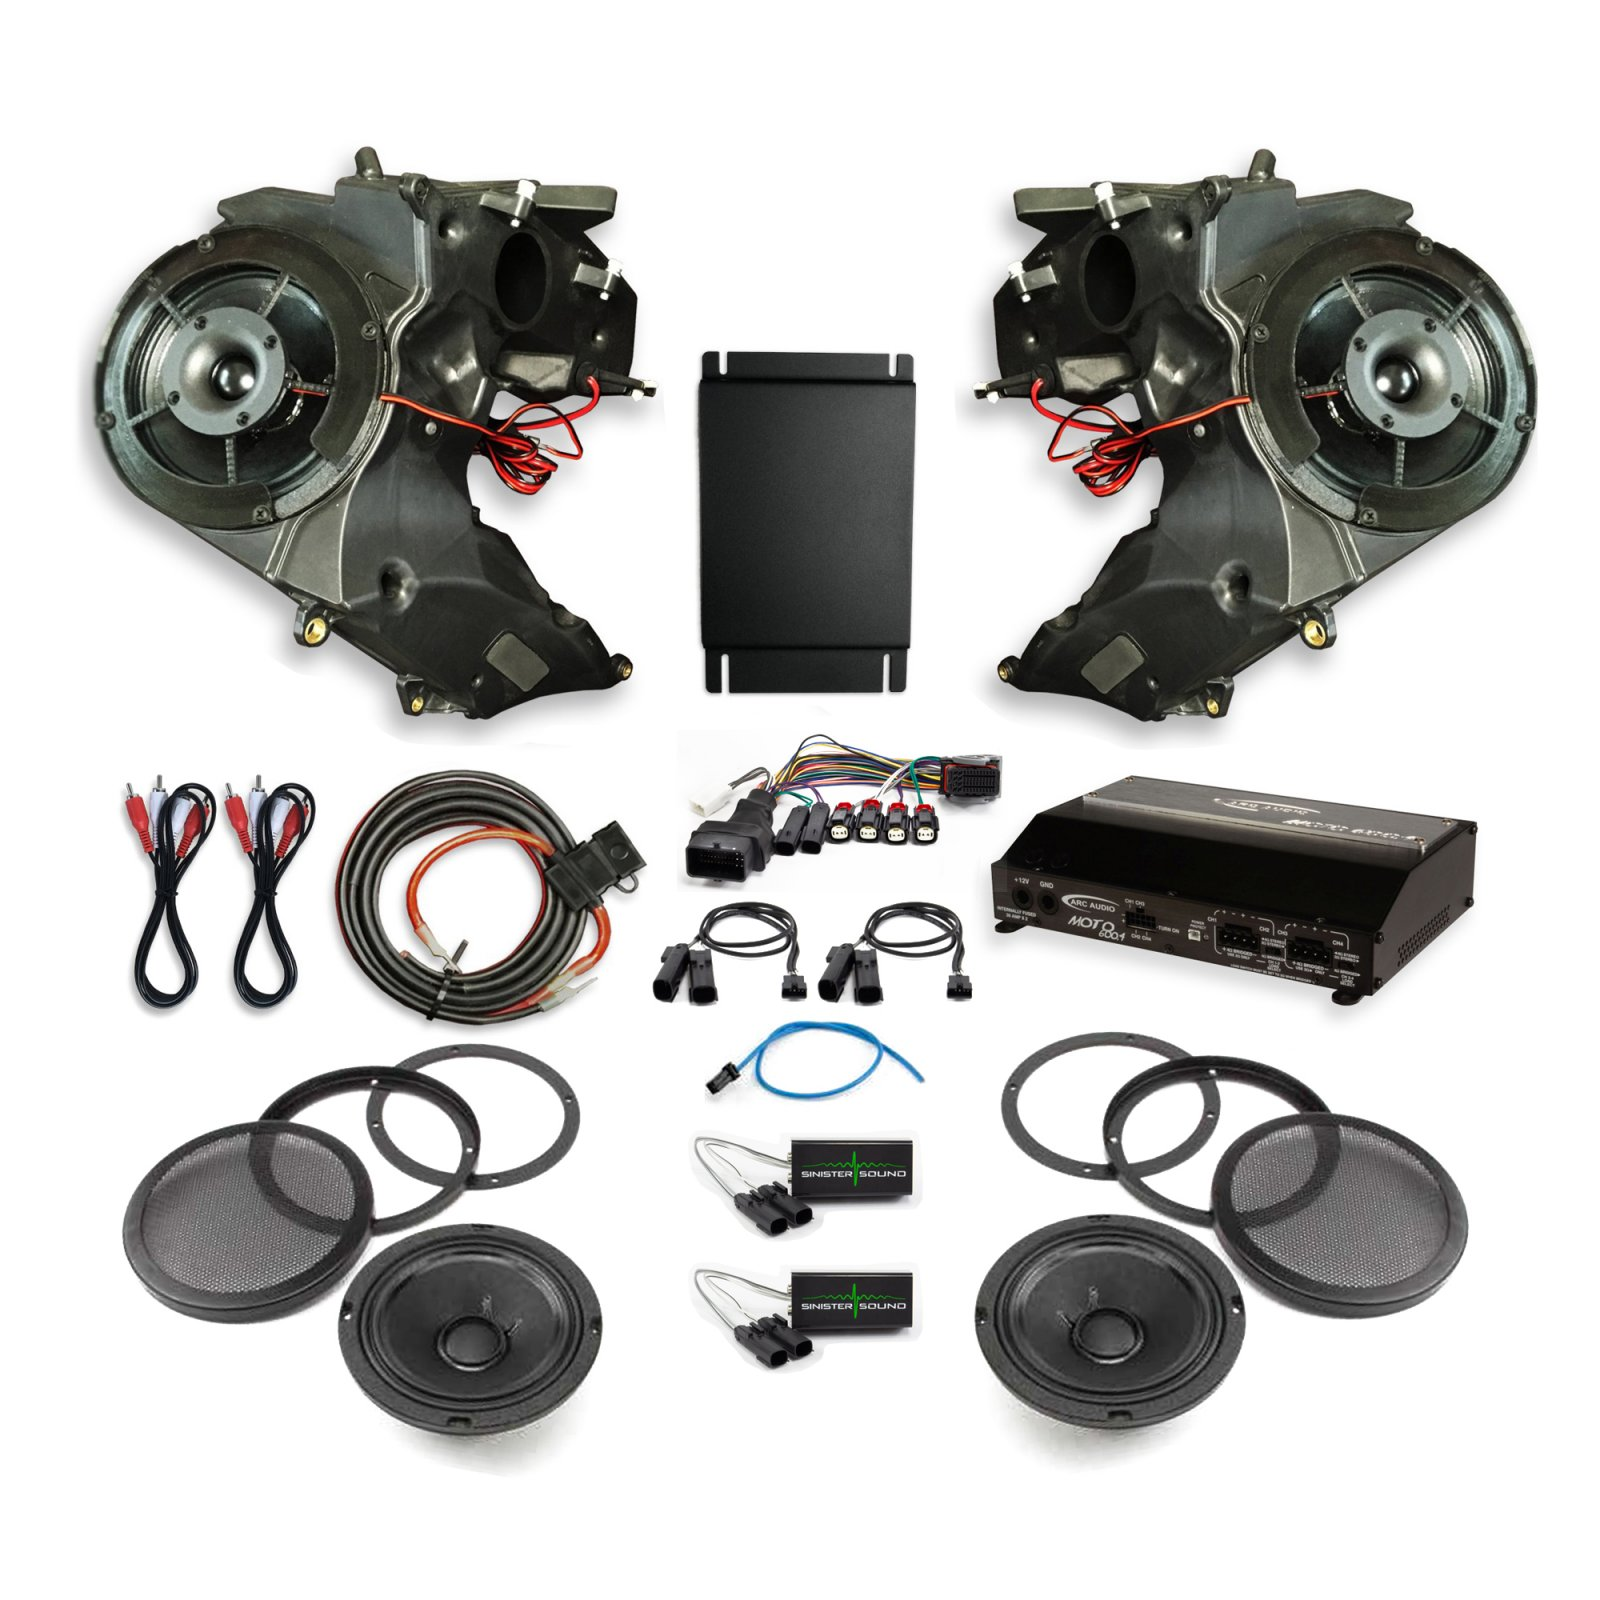 15-18 Road Glide Complete Ultra Kit -NOT FLASHED